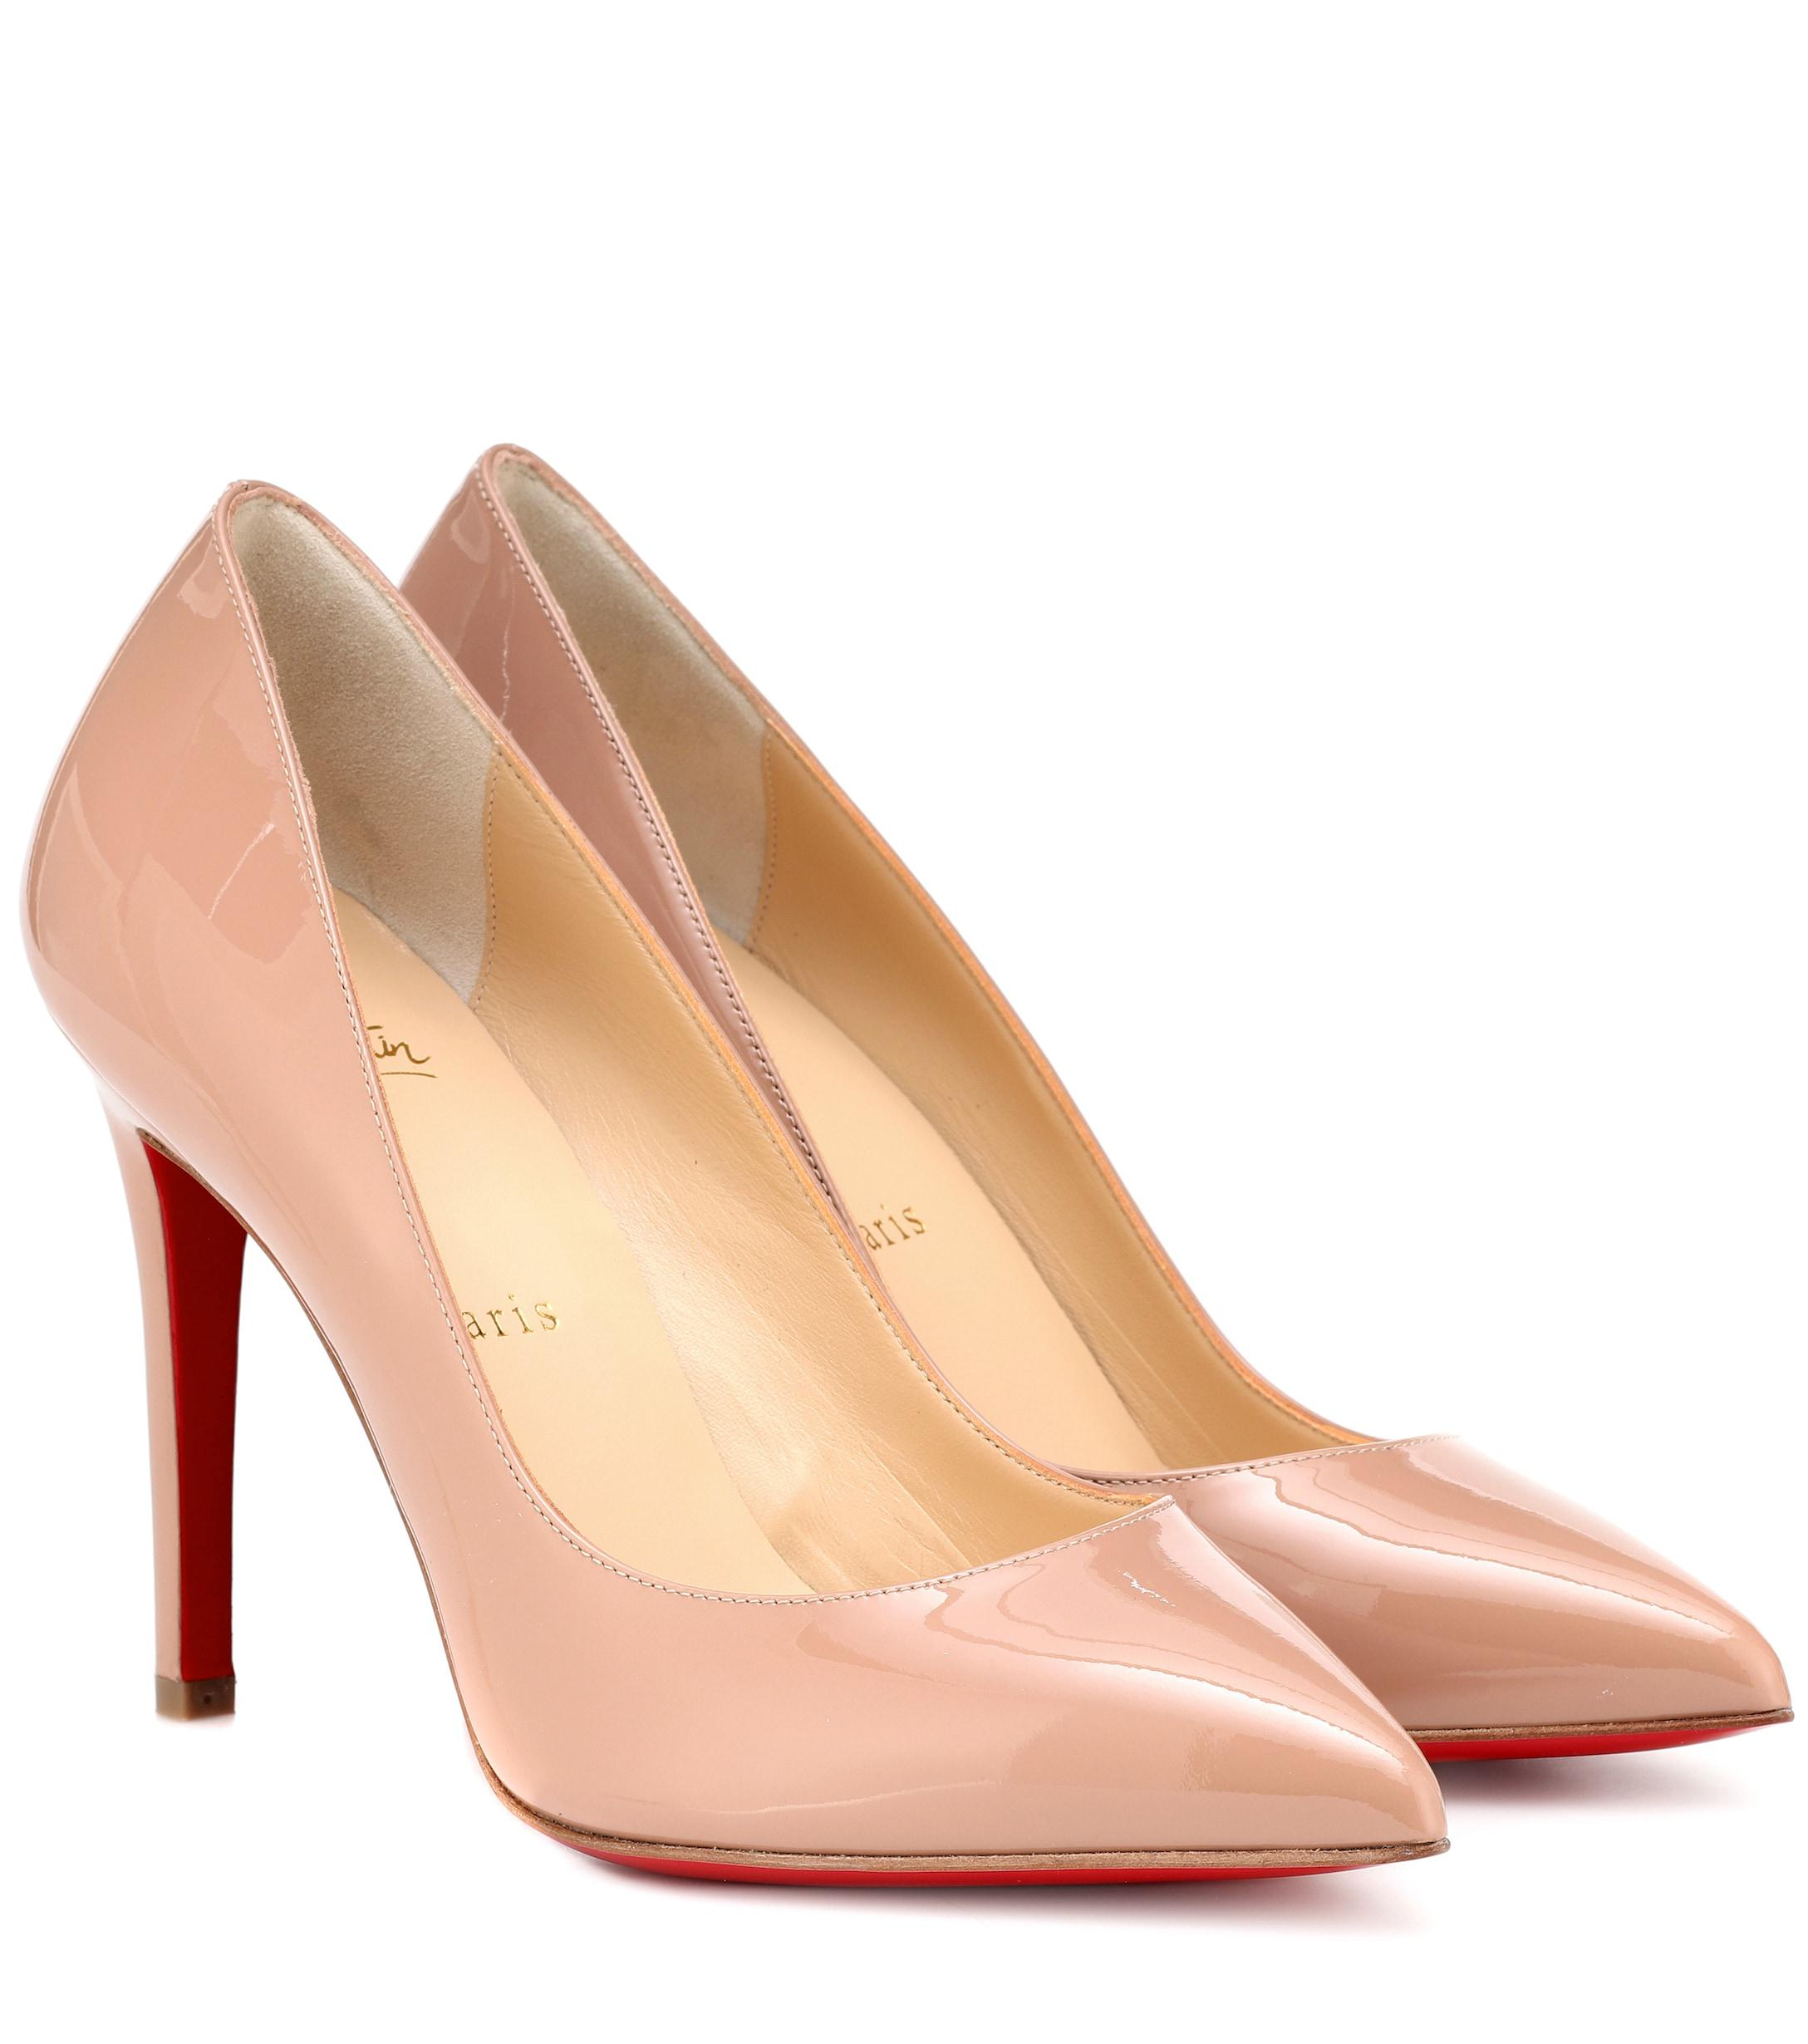 a1f3a0fc362 Christian Louboutin Pigalle 100 Patent Leather Pumps in Natural - Lyst